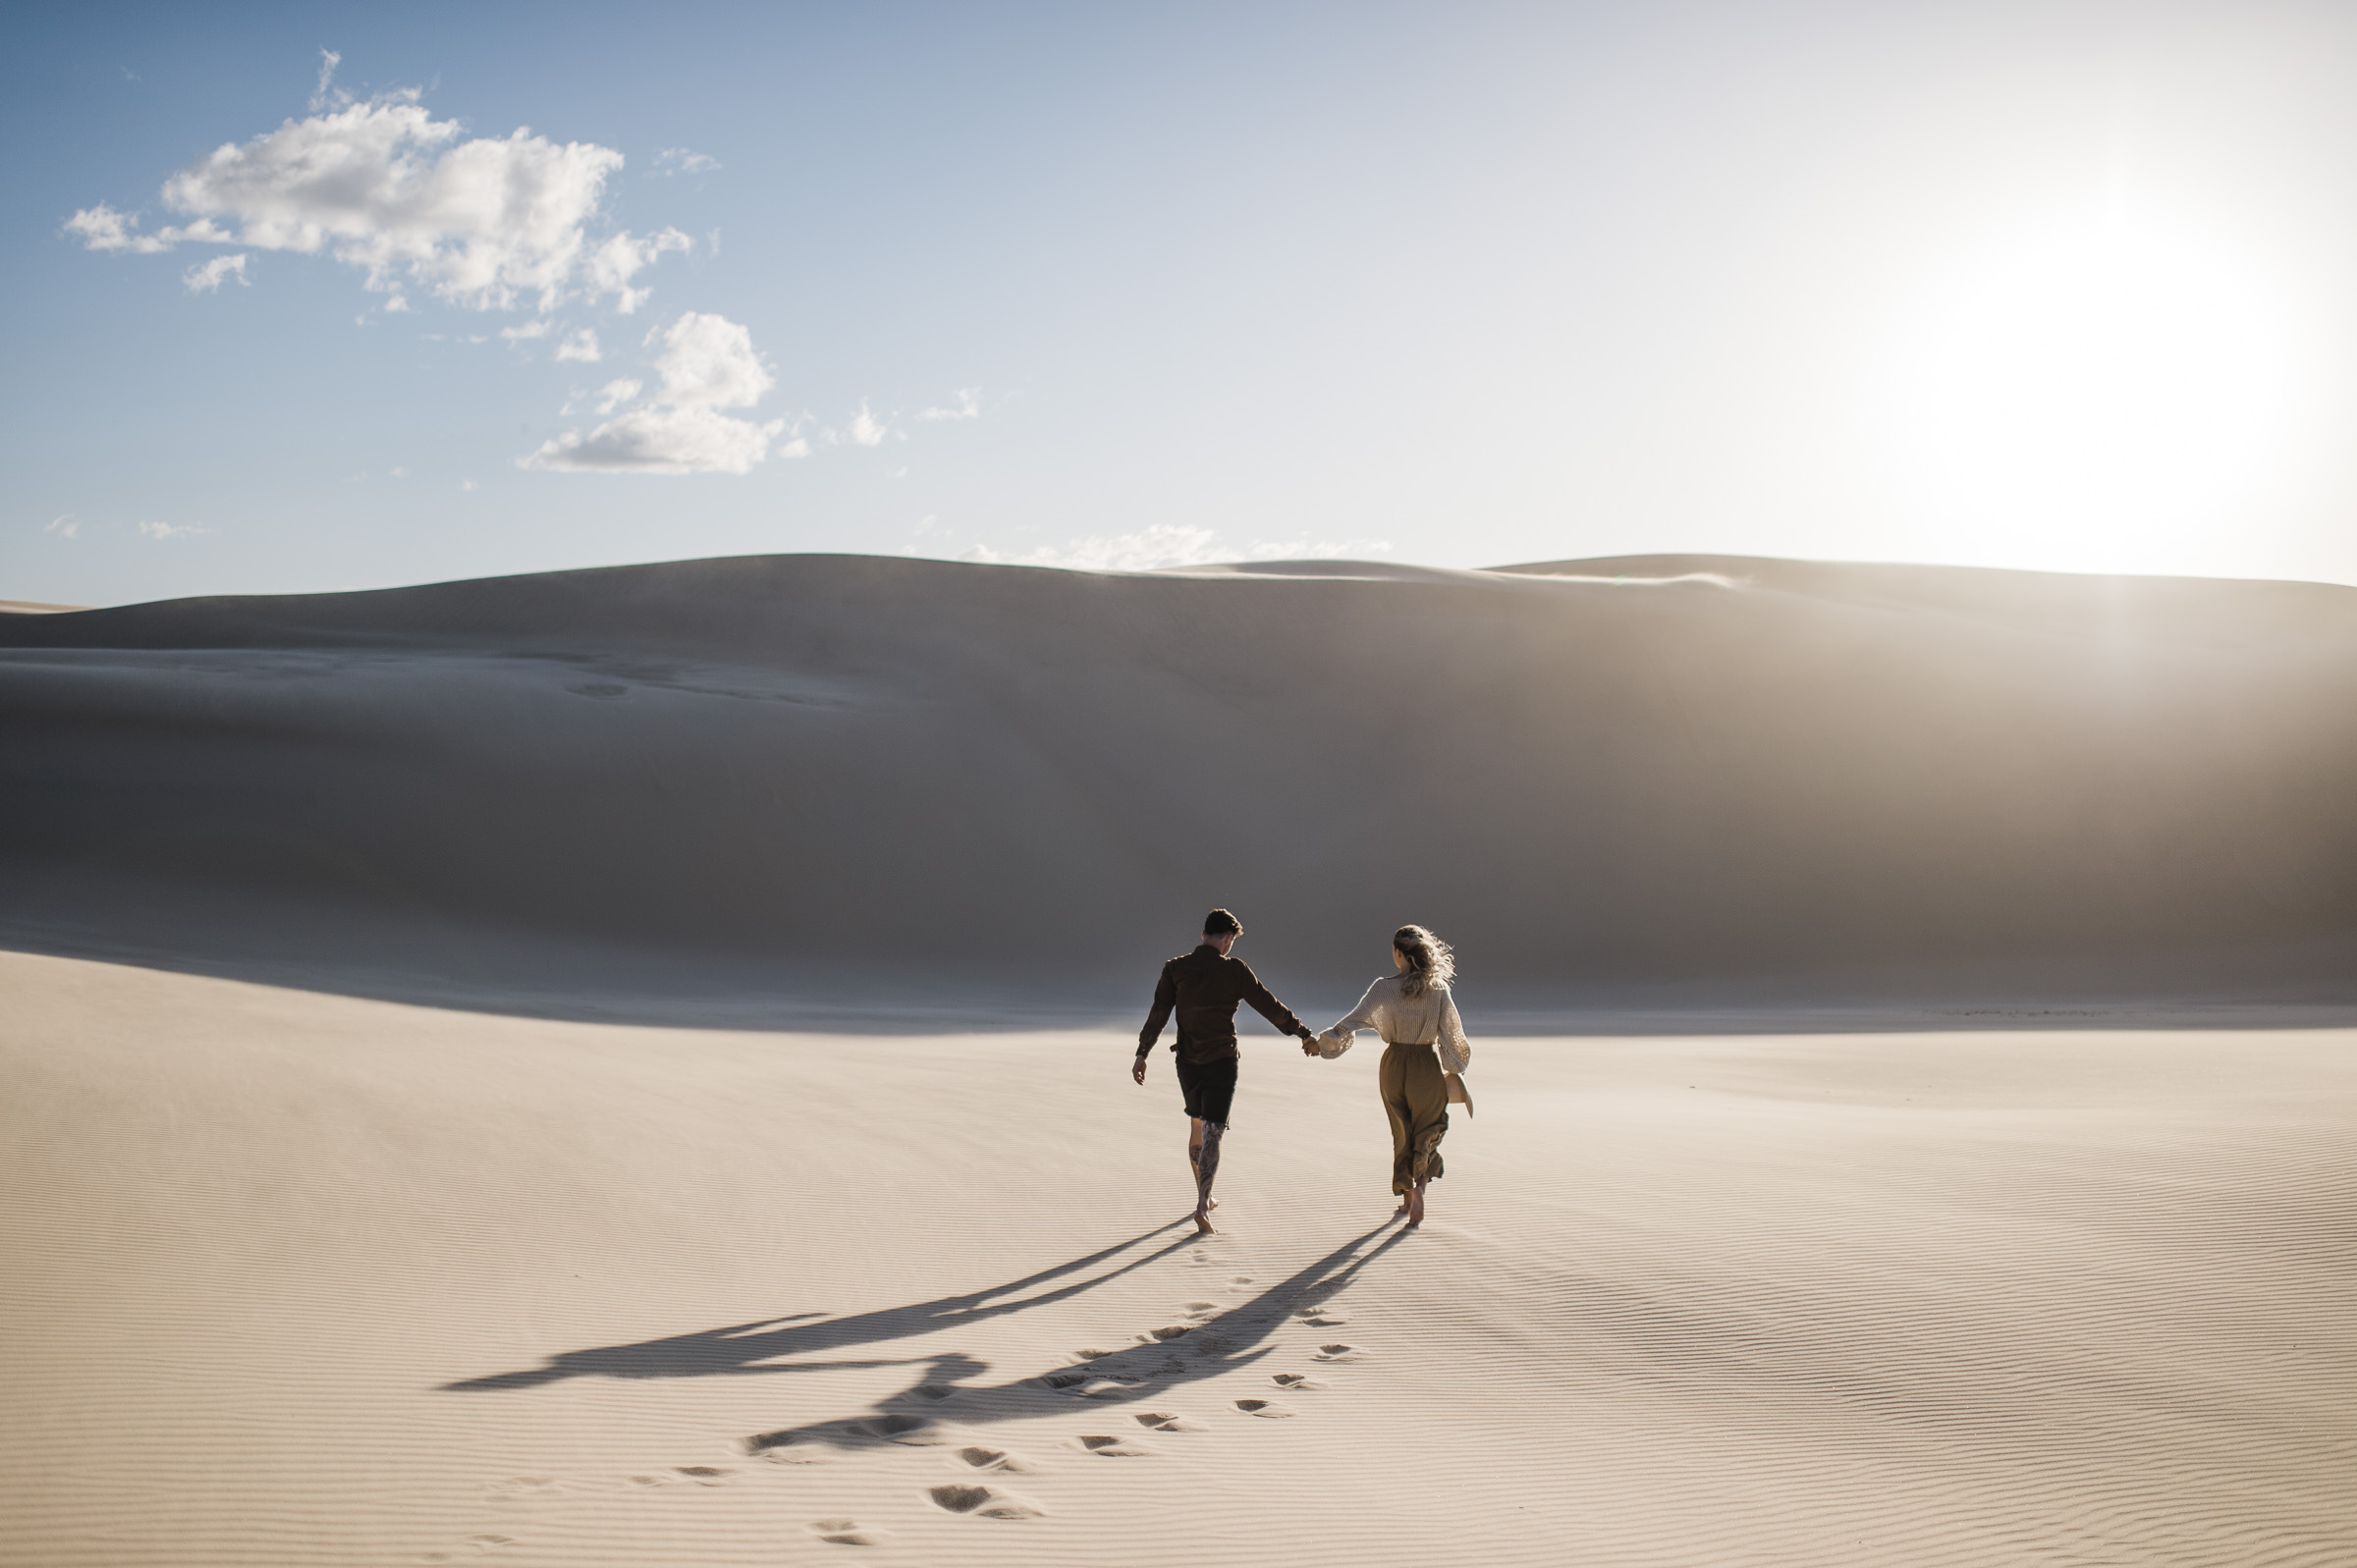 Ashlea_Jason_Stockton_Dunes_Engagement_Shoot_Blog-10.jpg